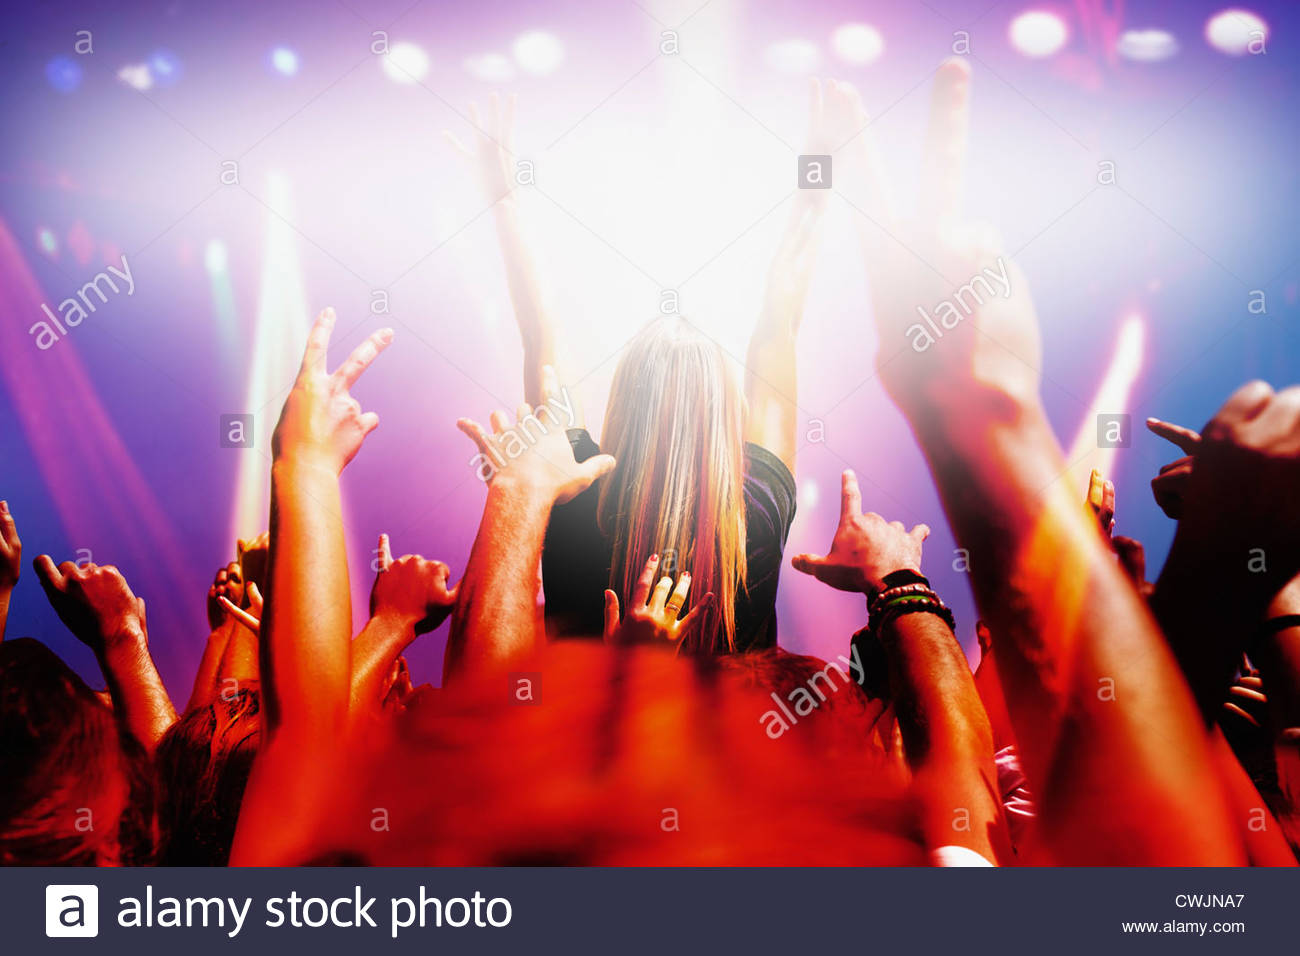 Stage lights shining on audience with arms raised at music concert - Stock Image